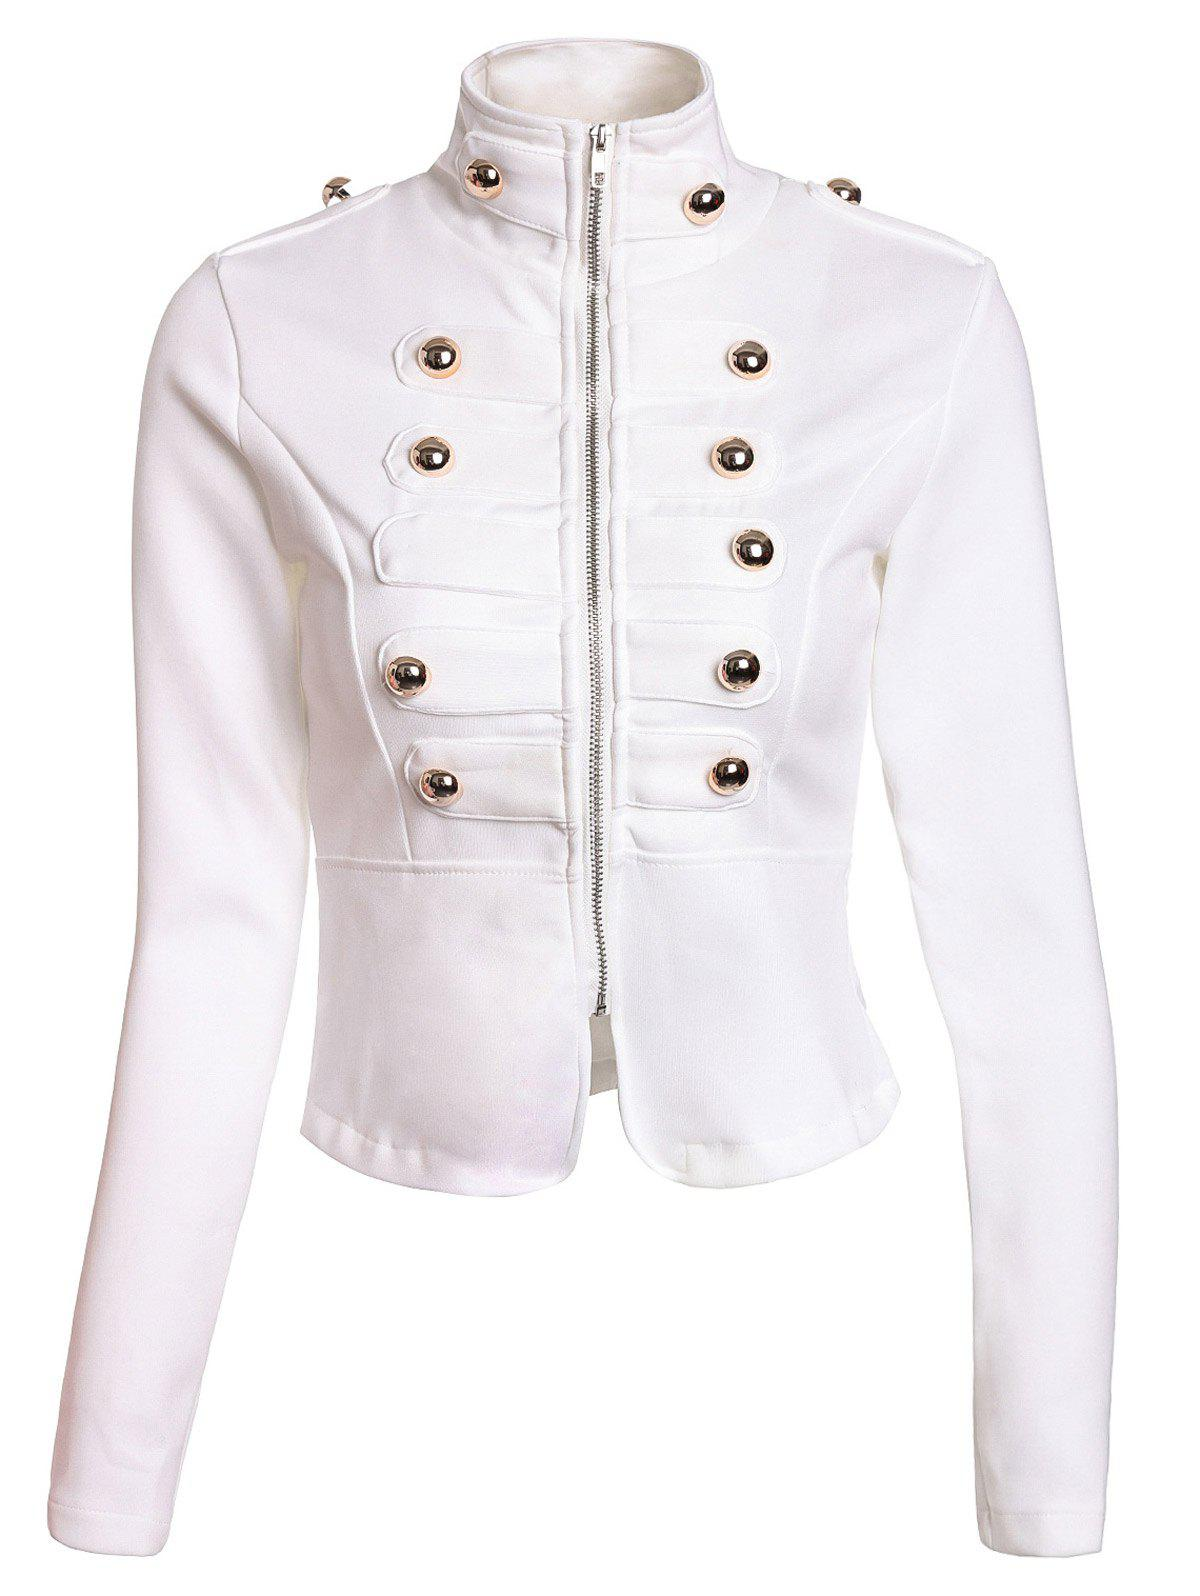 Support à la mode Collier Double-breasted Zipper manches longues veste pour femme - Blanc S